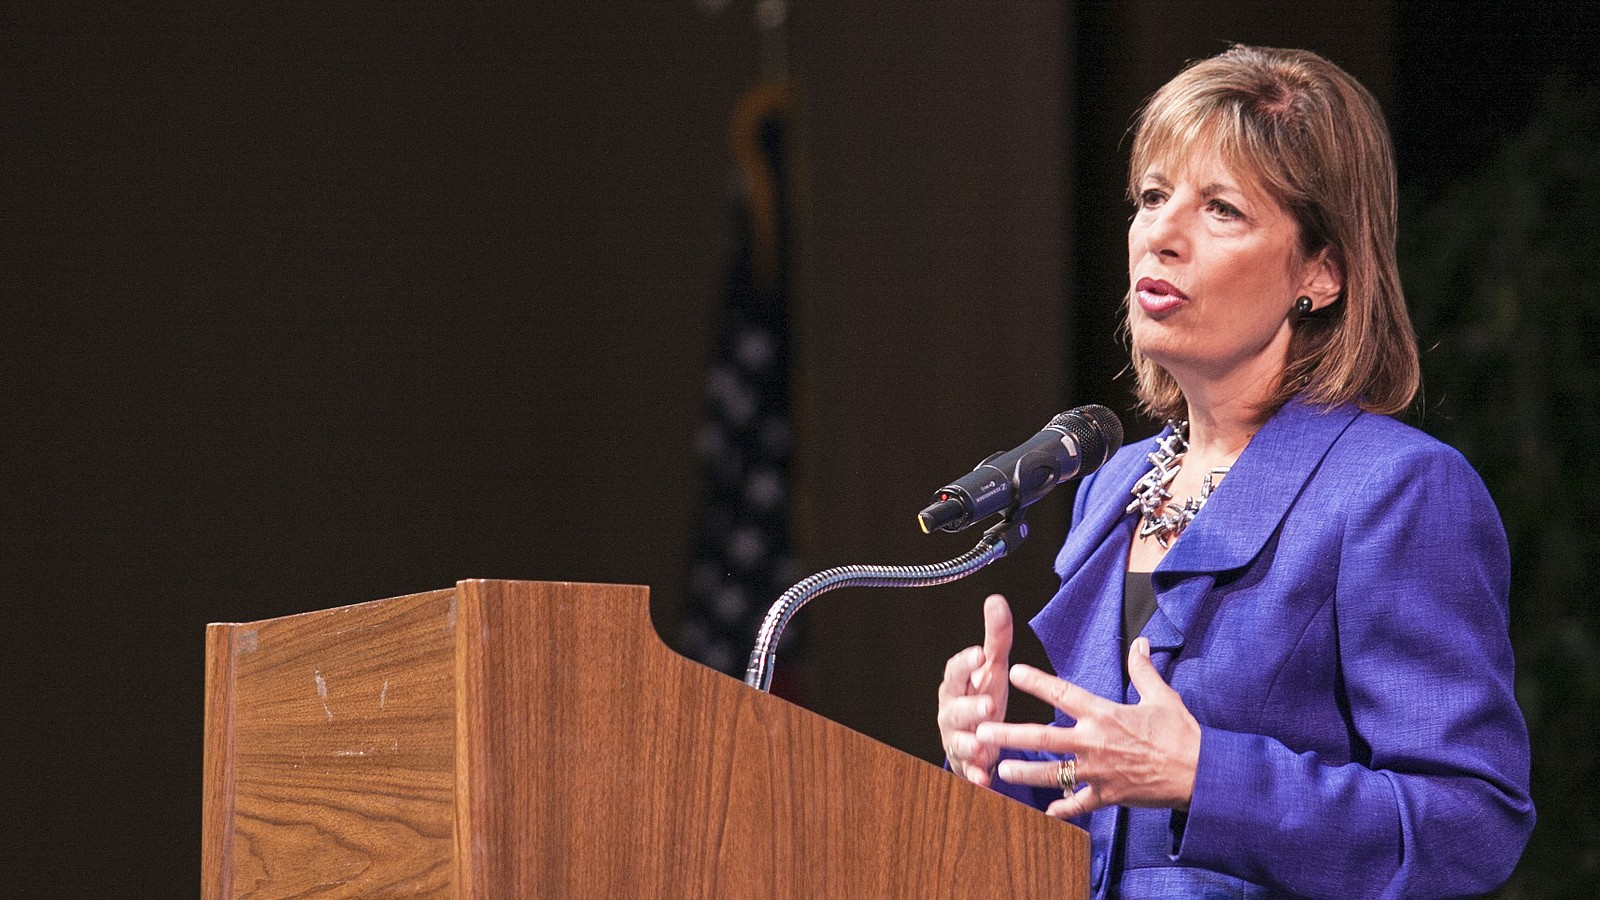 Congresswoman Speier's Gender Equality Summit: Title IX For Pro Sports?